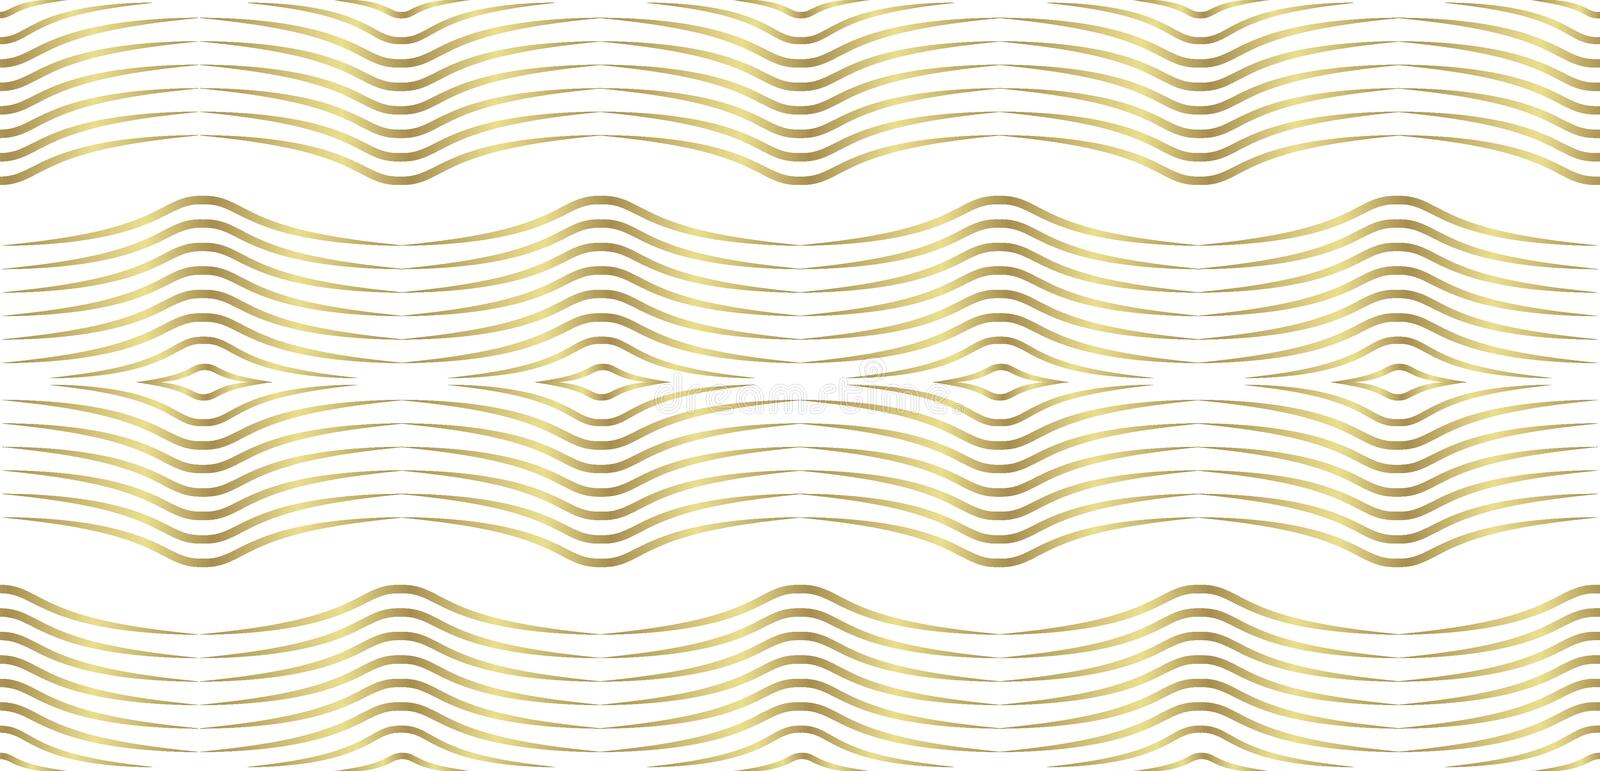 Vector geometric pattern of gold wavy lines in a minimalist style. modern seamless figure in gold gradient for design isolated on vector illustration